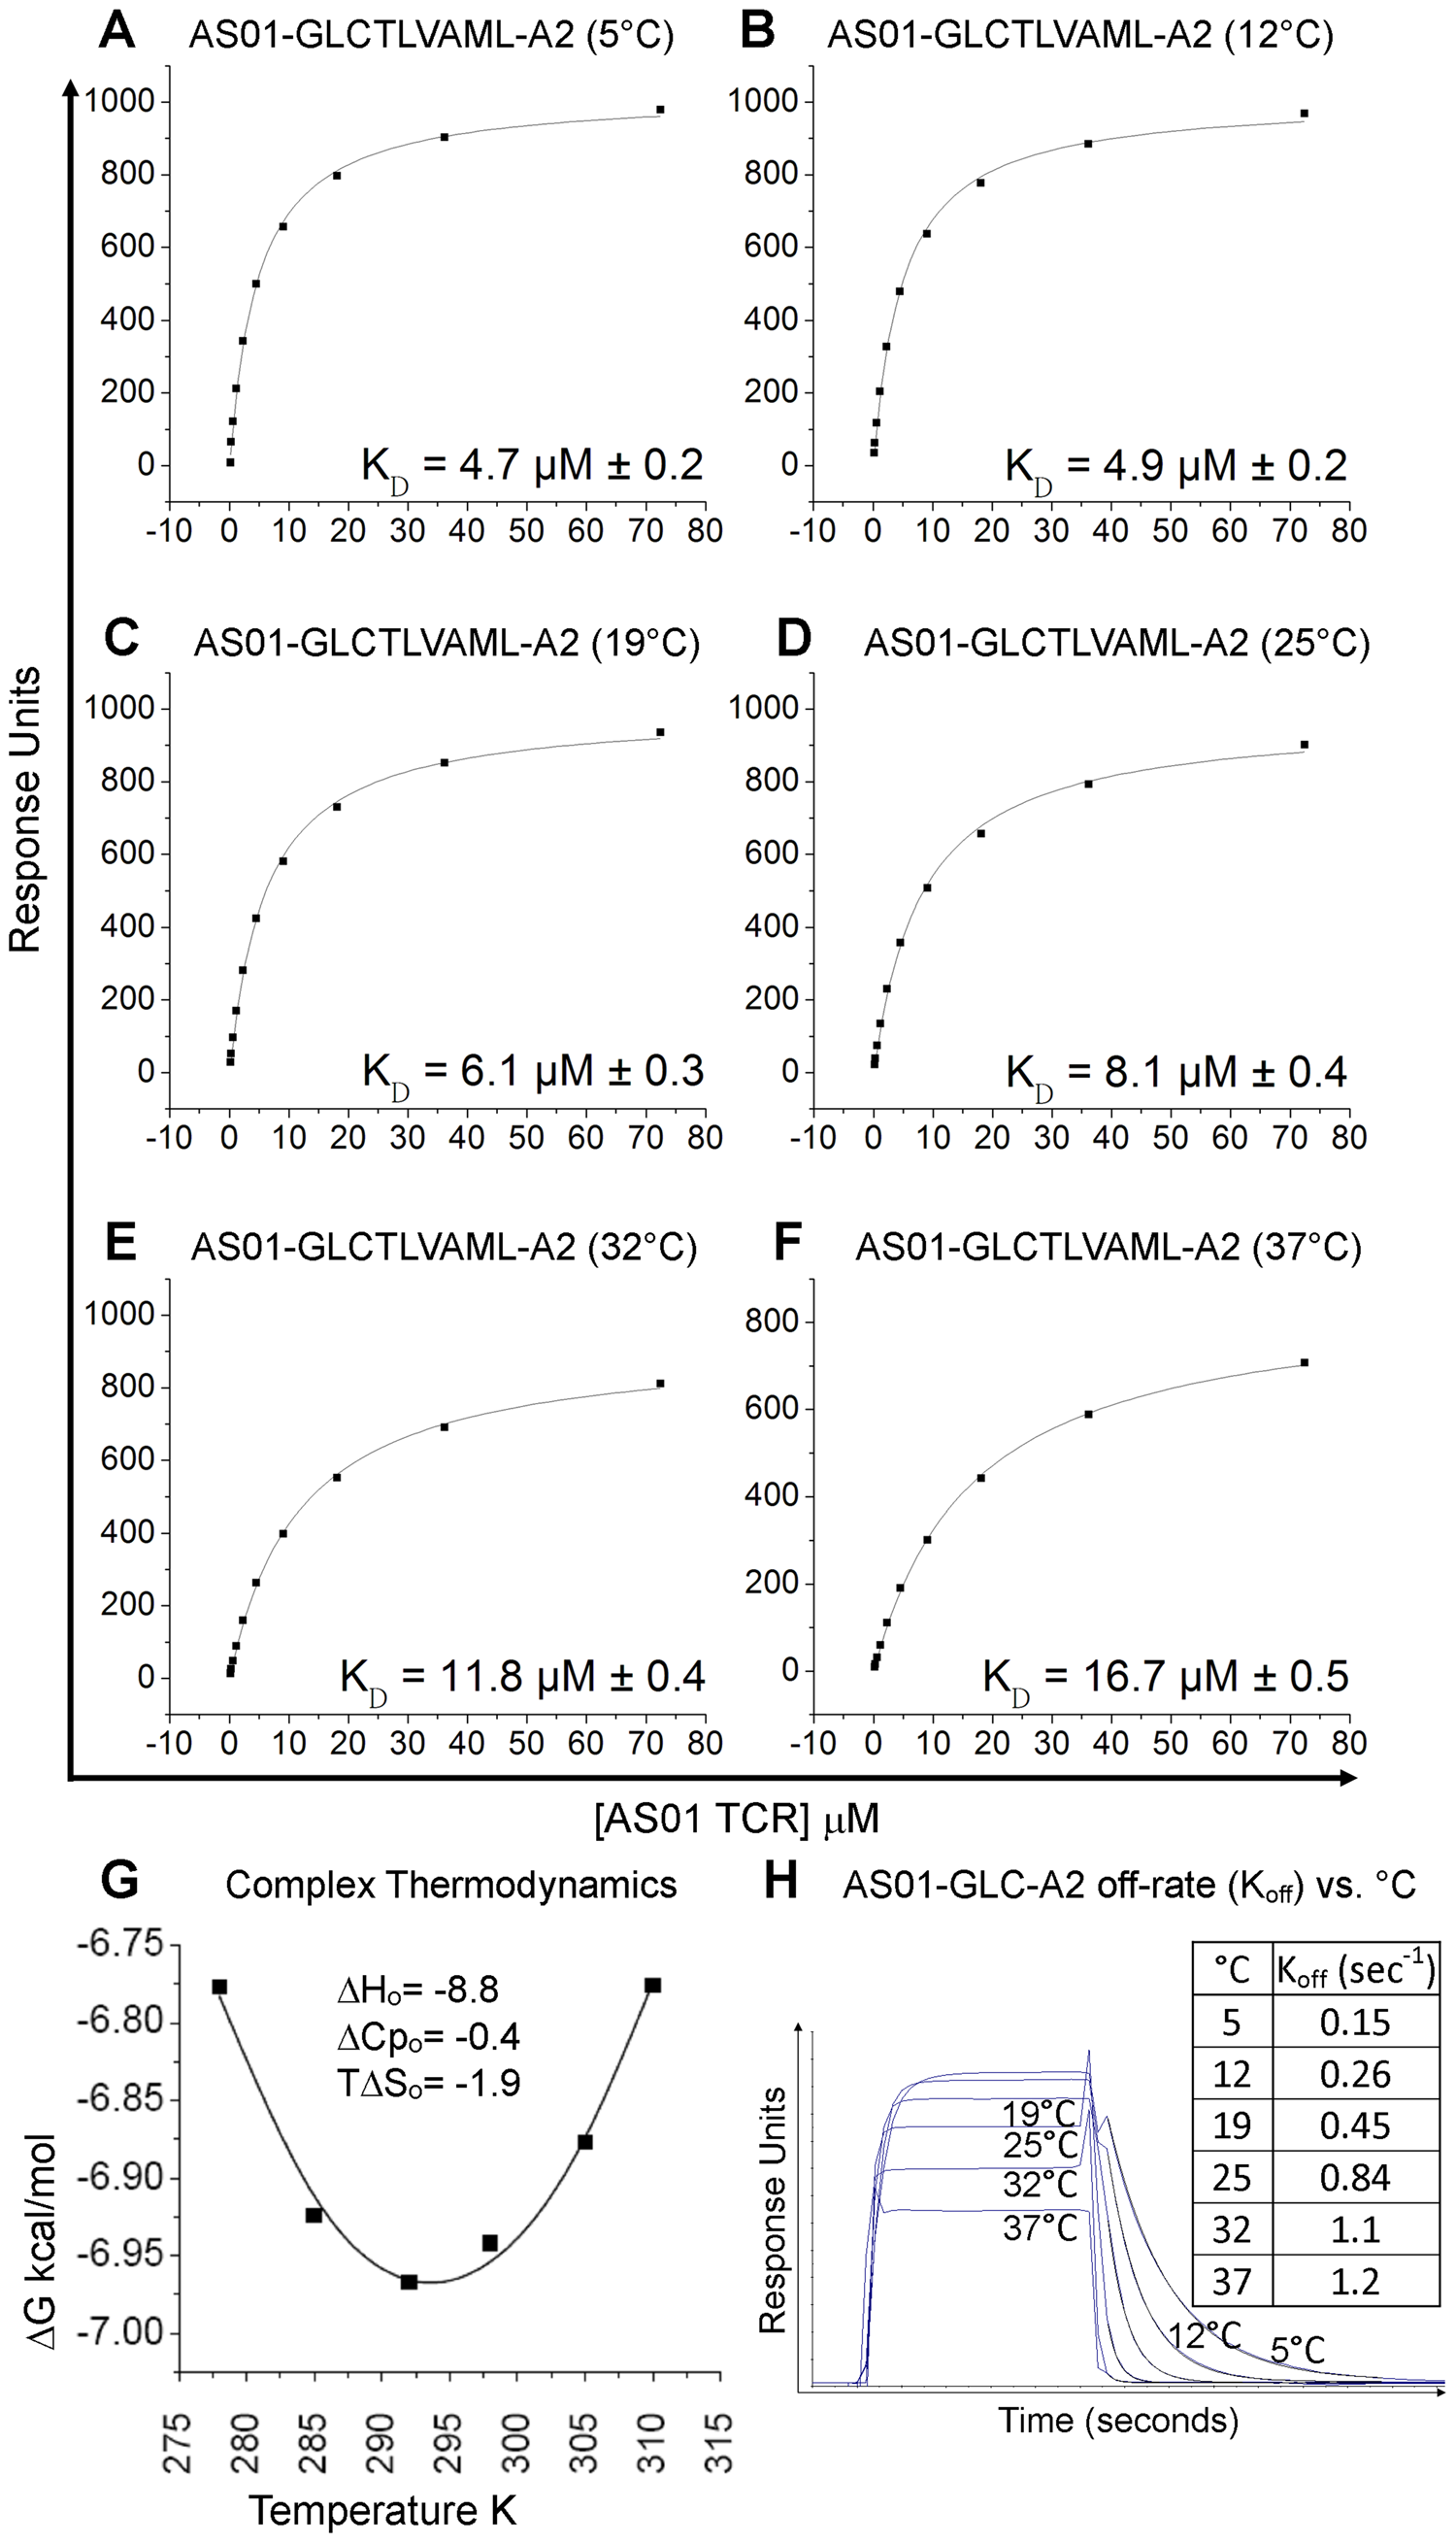 Binding affinity and thermodynamics of the AS01-GLC-A2 interaction.